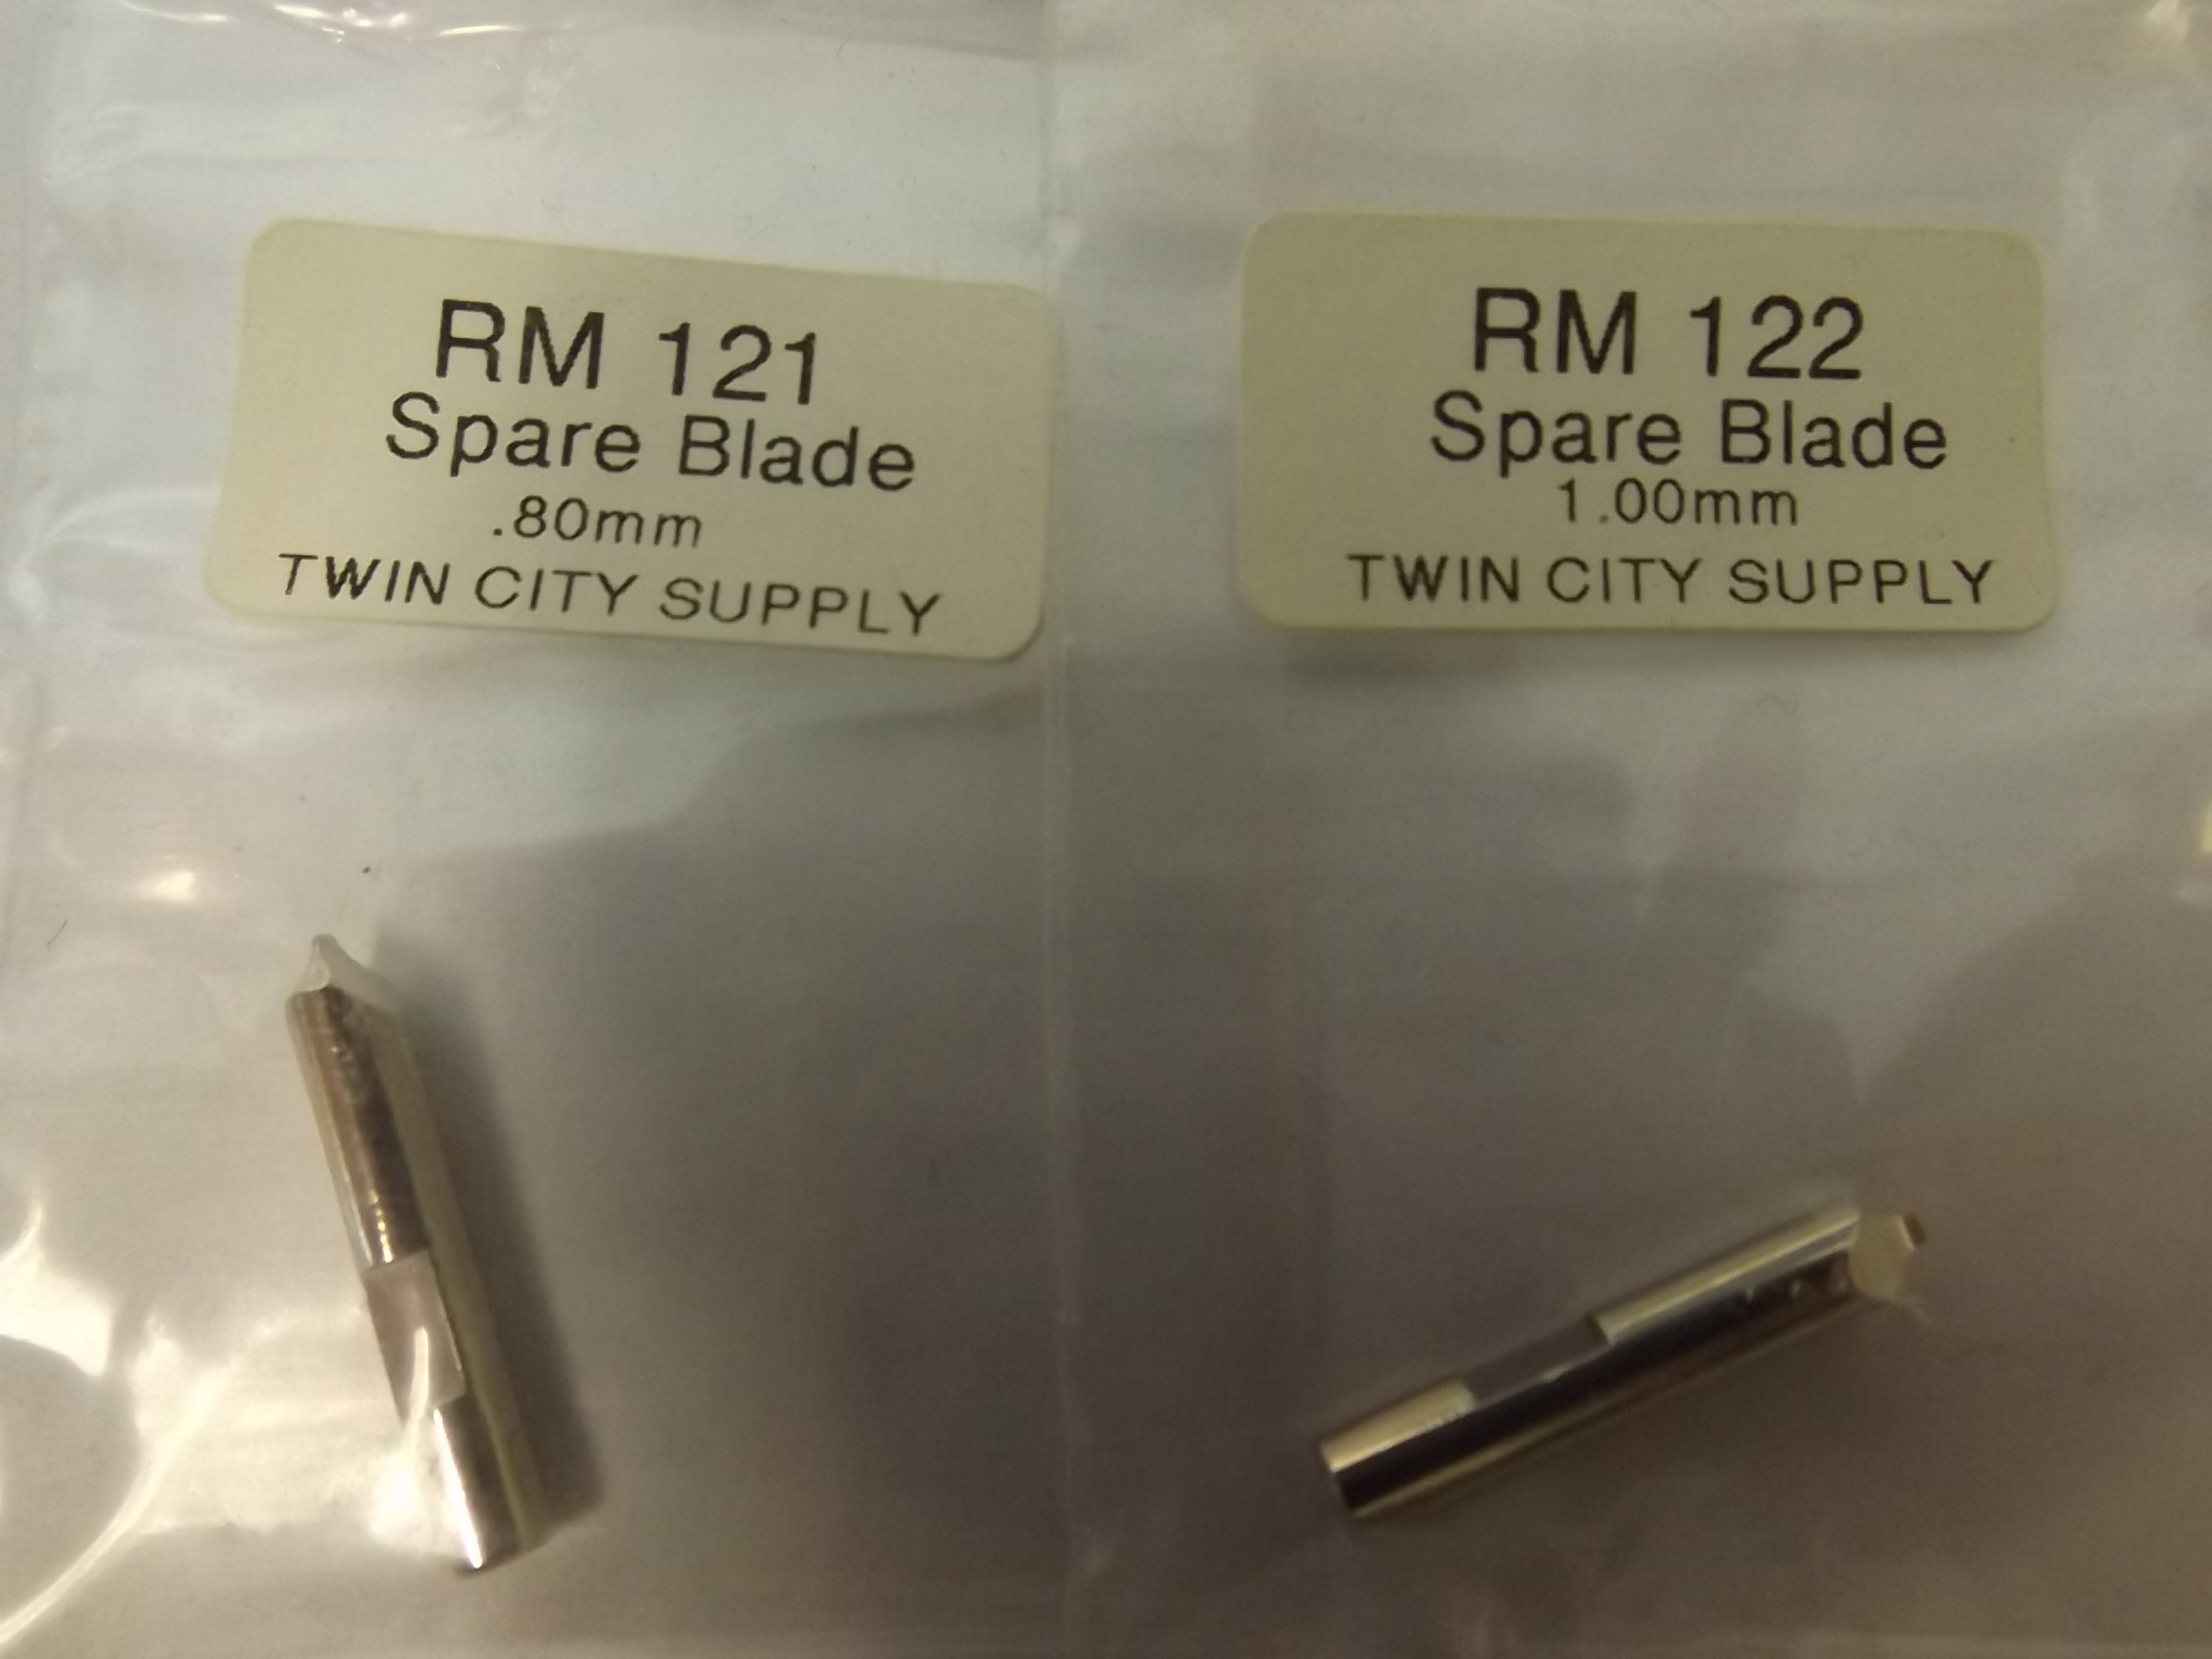 RM121 Replacement Blade, .80mm, for Watch Bracelet Screw Removing Tool -Eurotool HOL-120.01